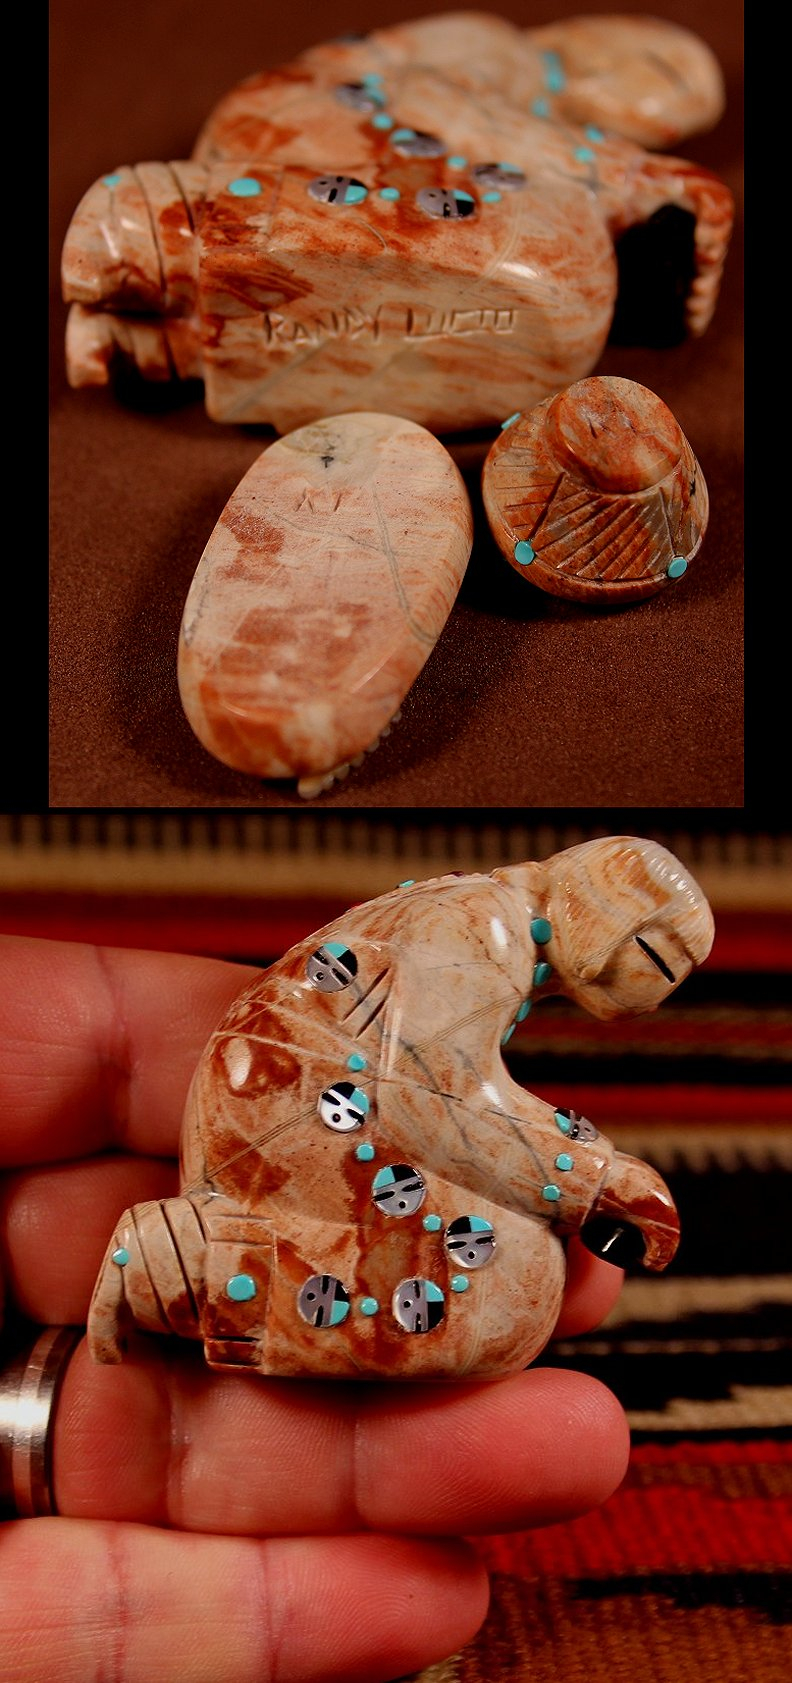 Zuni Spirits is proud to represent a variety of Zuni fetish carvers, including Randy Lucio!